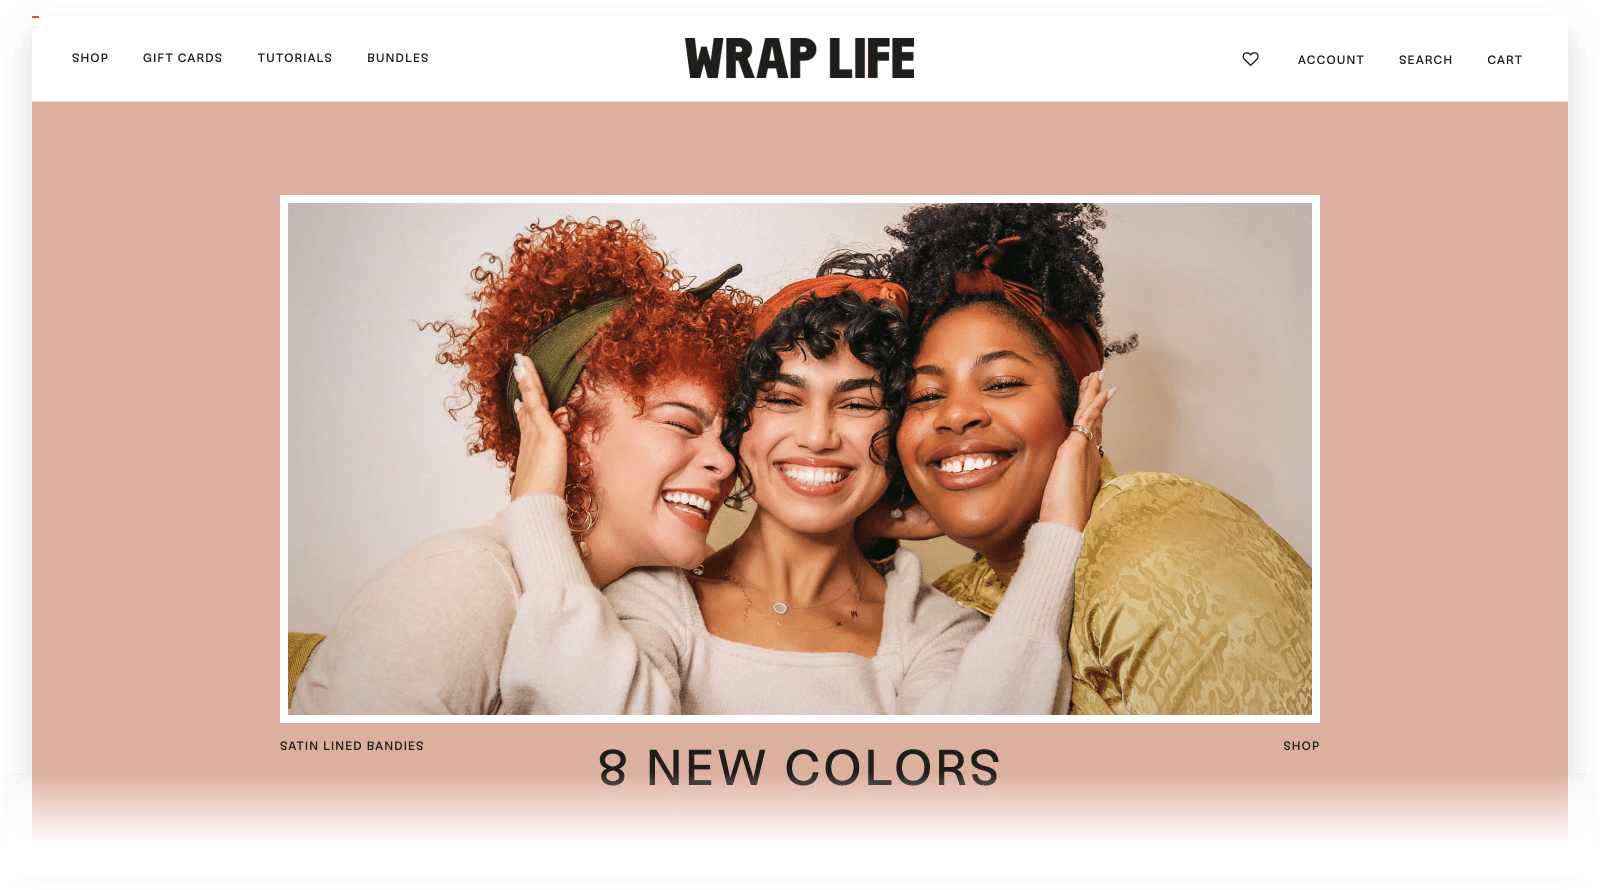 The Wrap Life